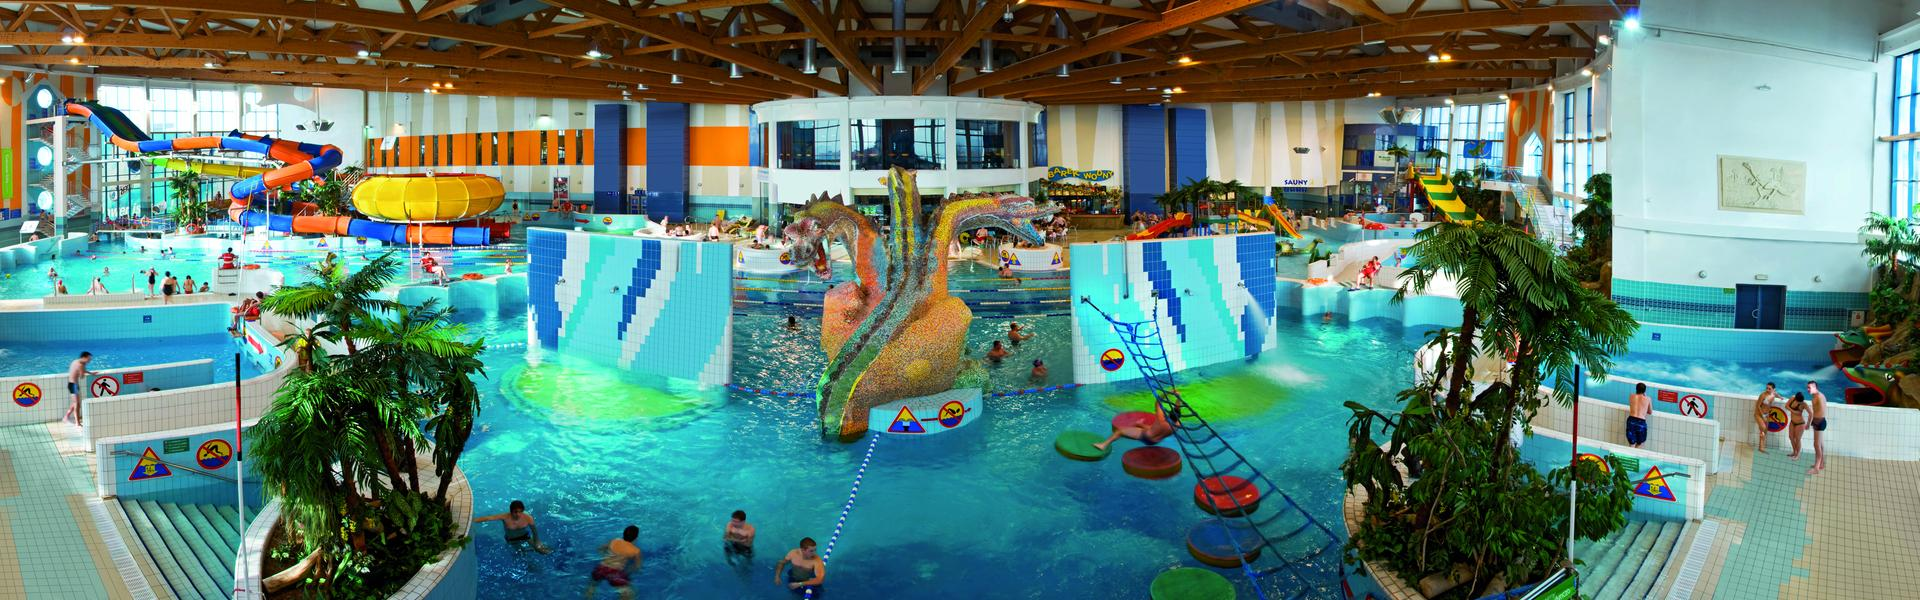 Image: Aquatic Recreation